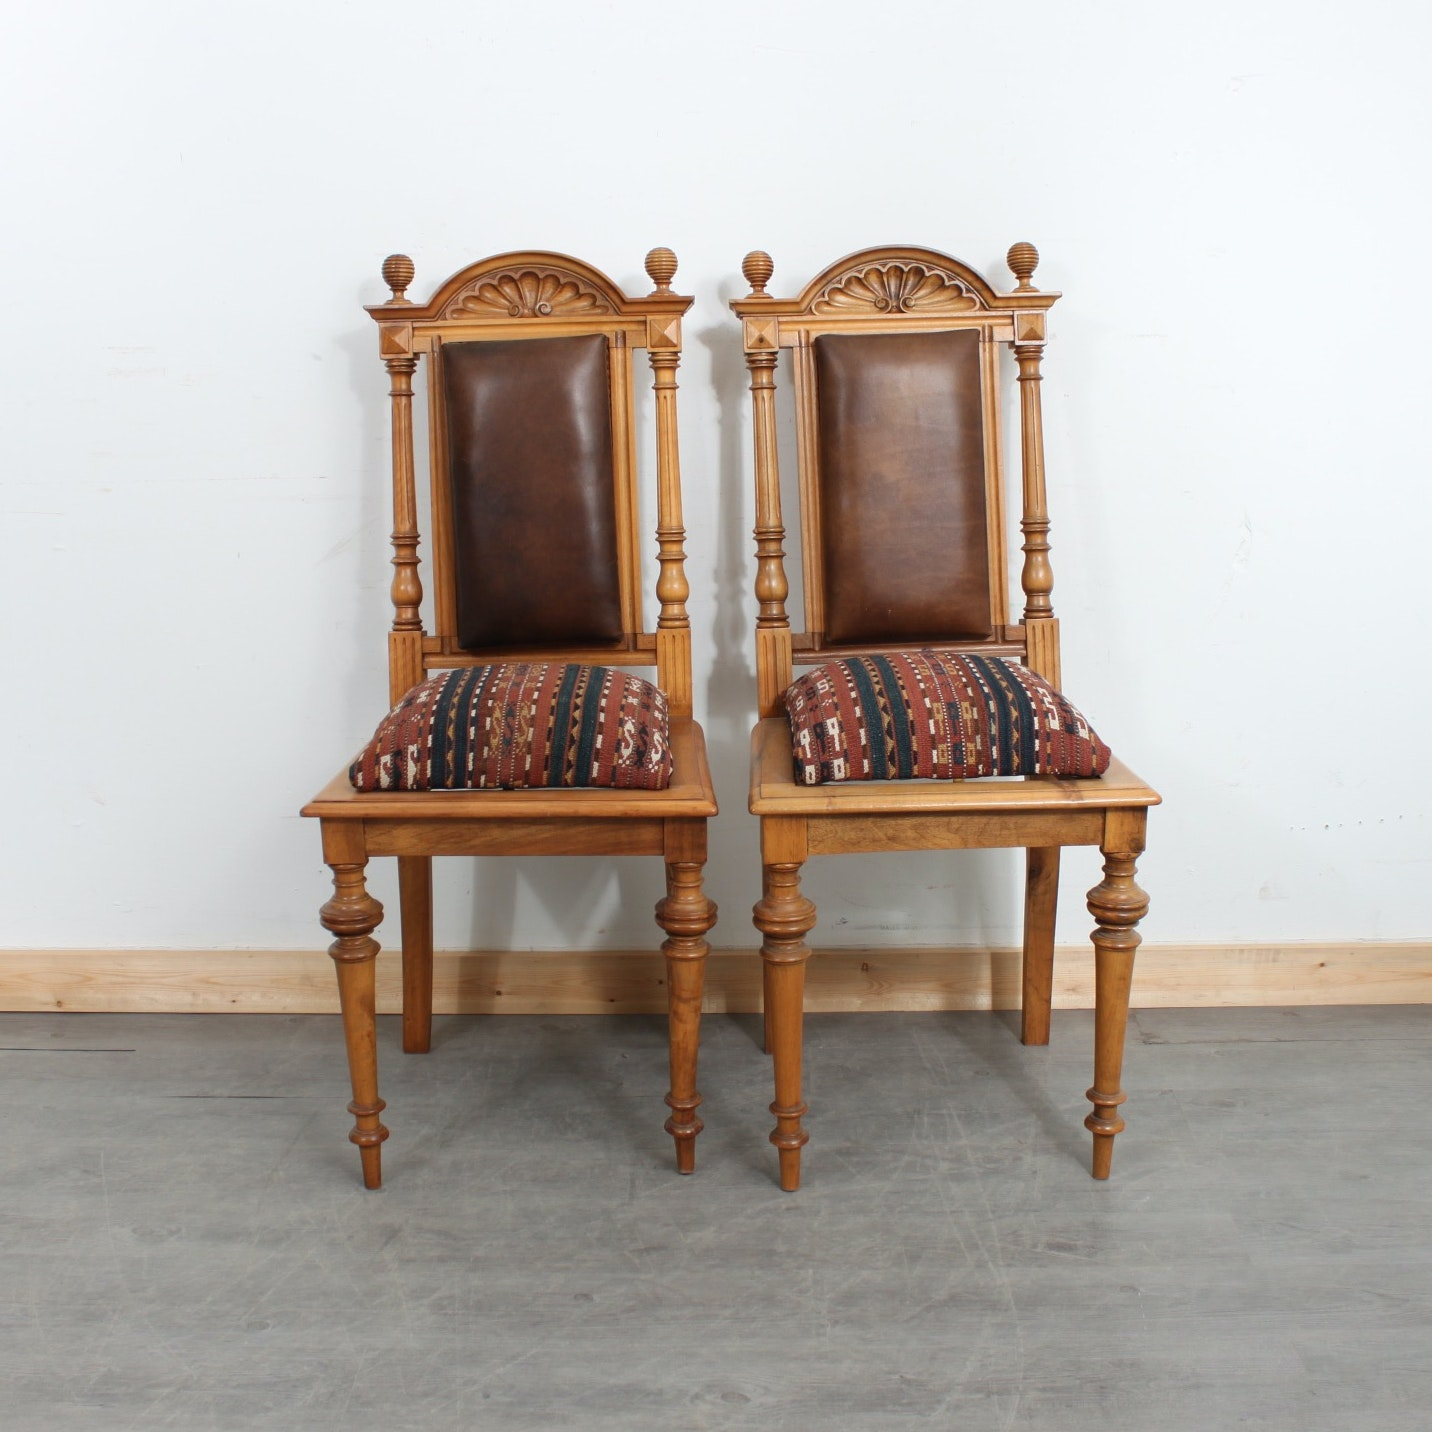 Vintage Jacobean Revival Carved Wood Dining Chairs